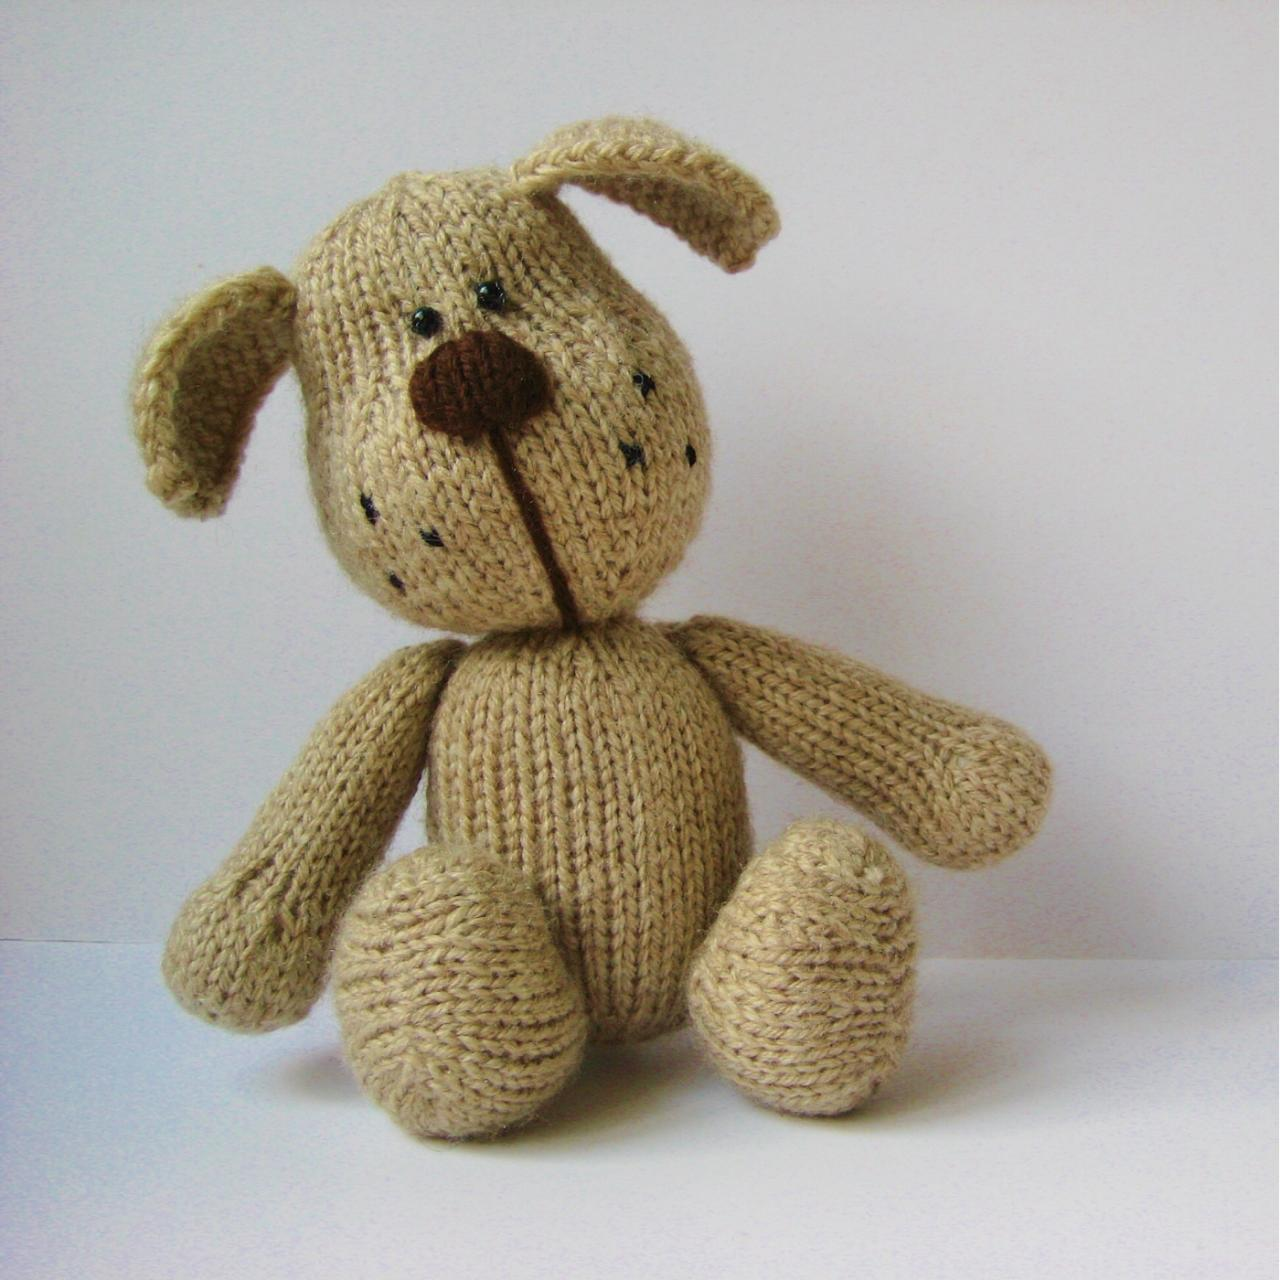 Dog Sweater Patterns Knitting : Bernie The Dog Toy Knitting Pattern on Luulla